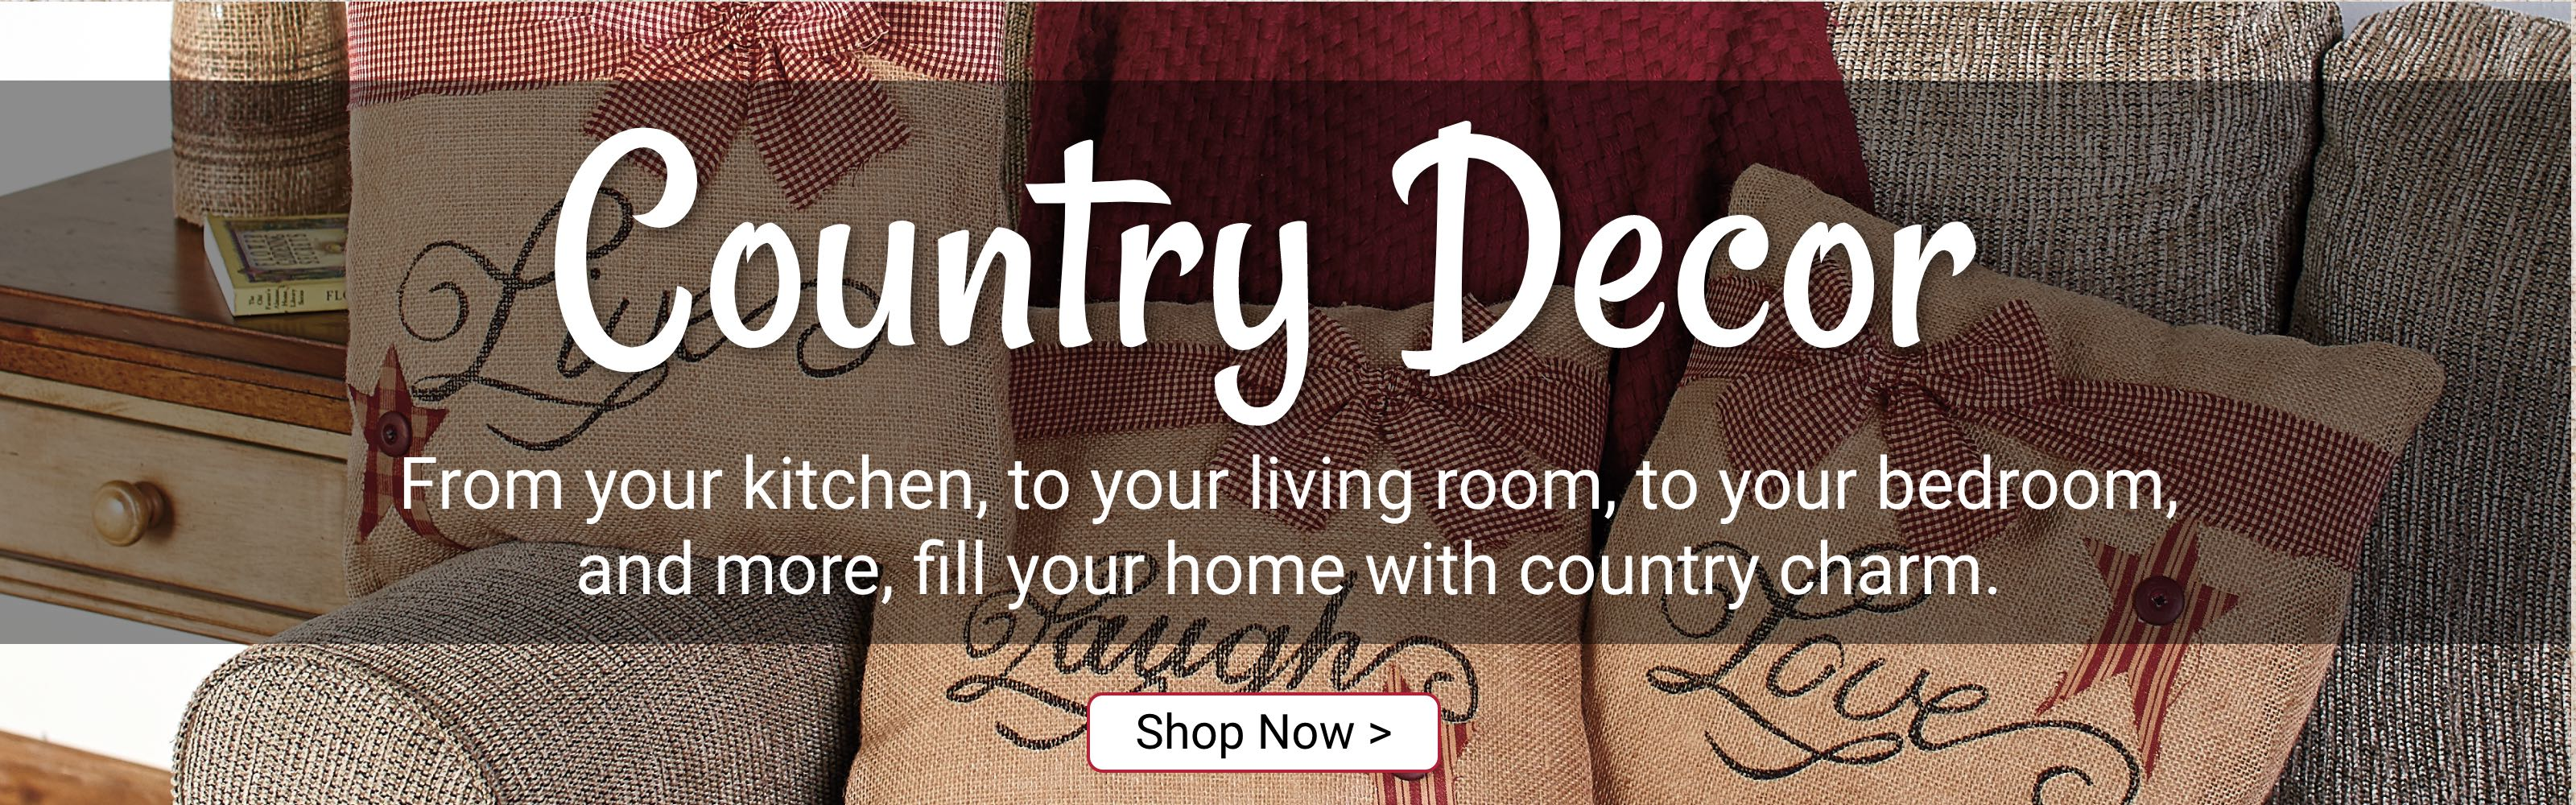 Country decor. Shop now.